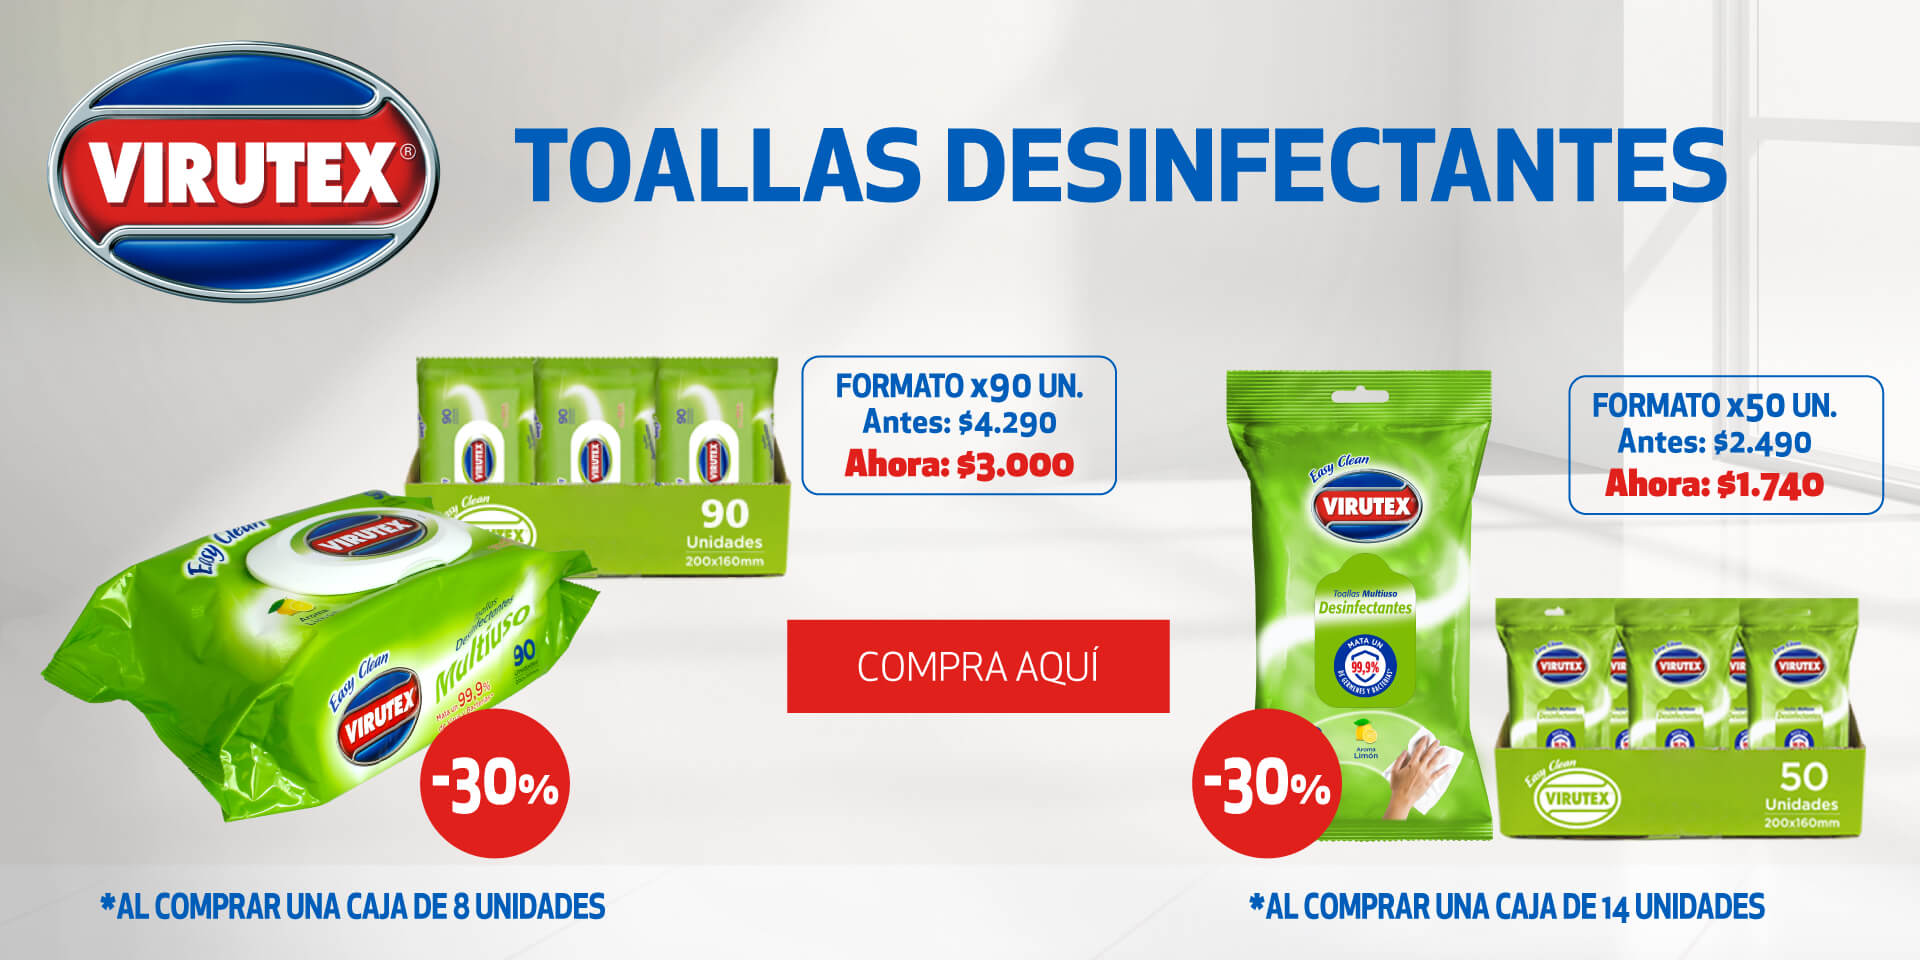 Toallas desinfectantes virutex